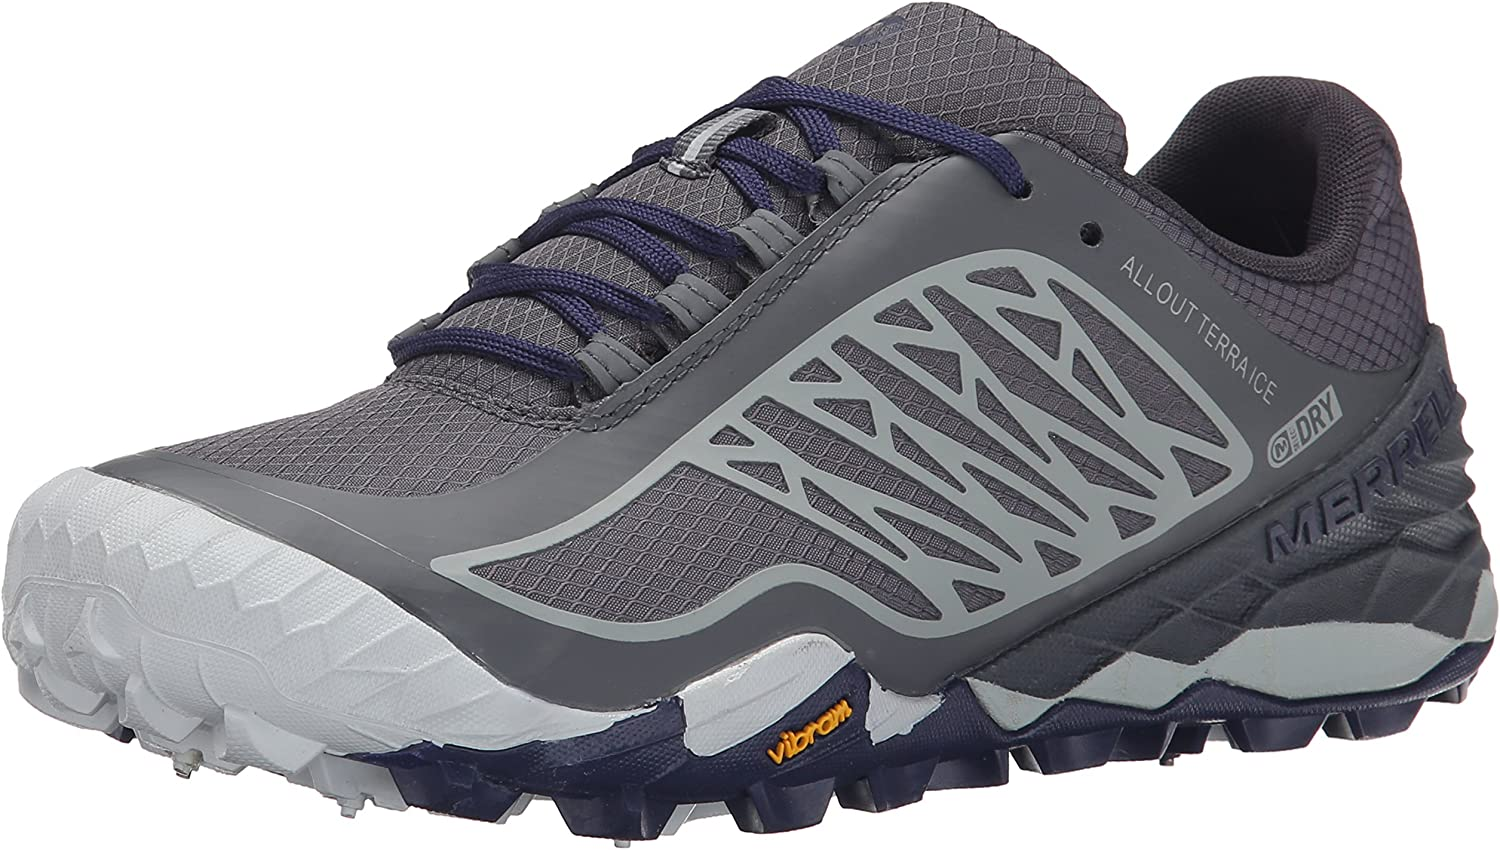 Merrell Women's All Out Terra Ice Waterproof Trail Running shoes